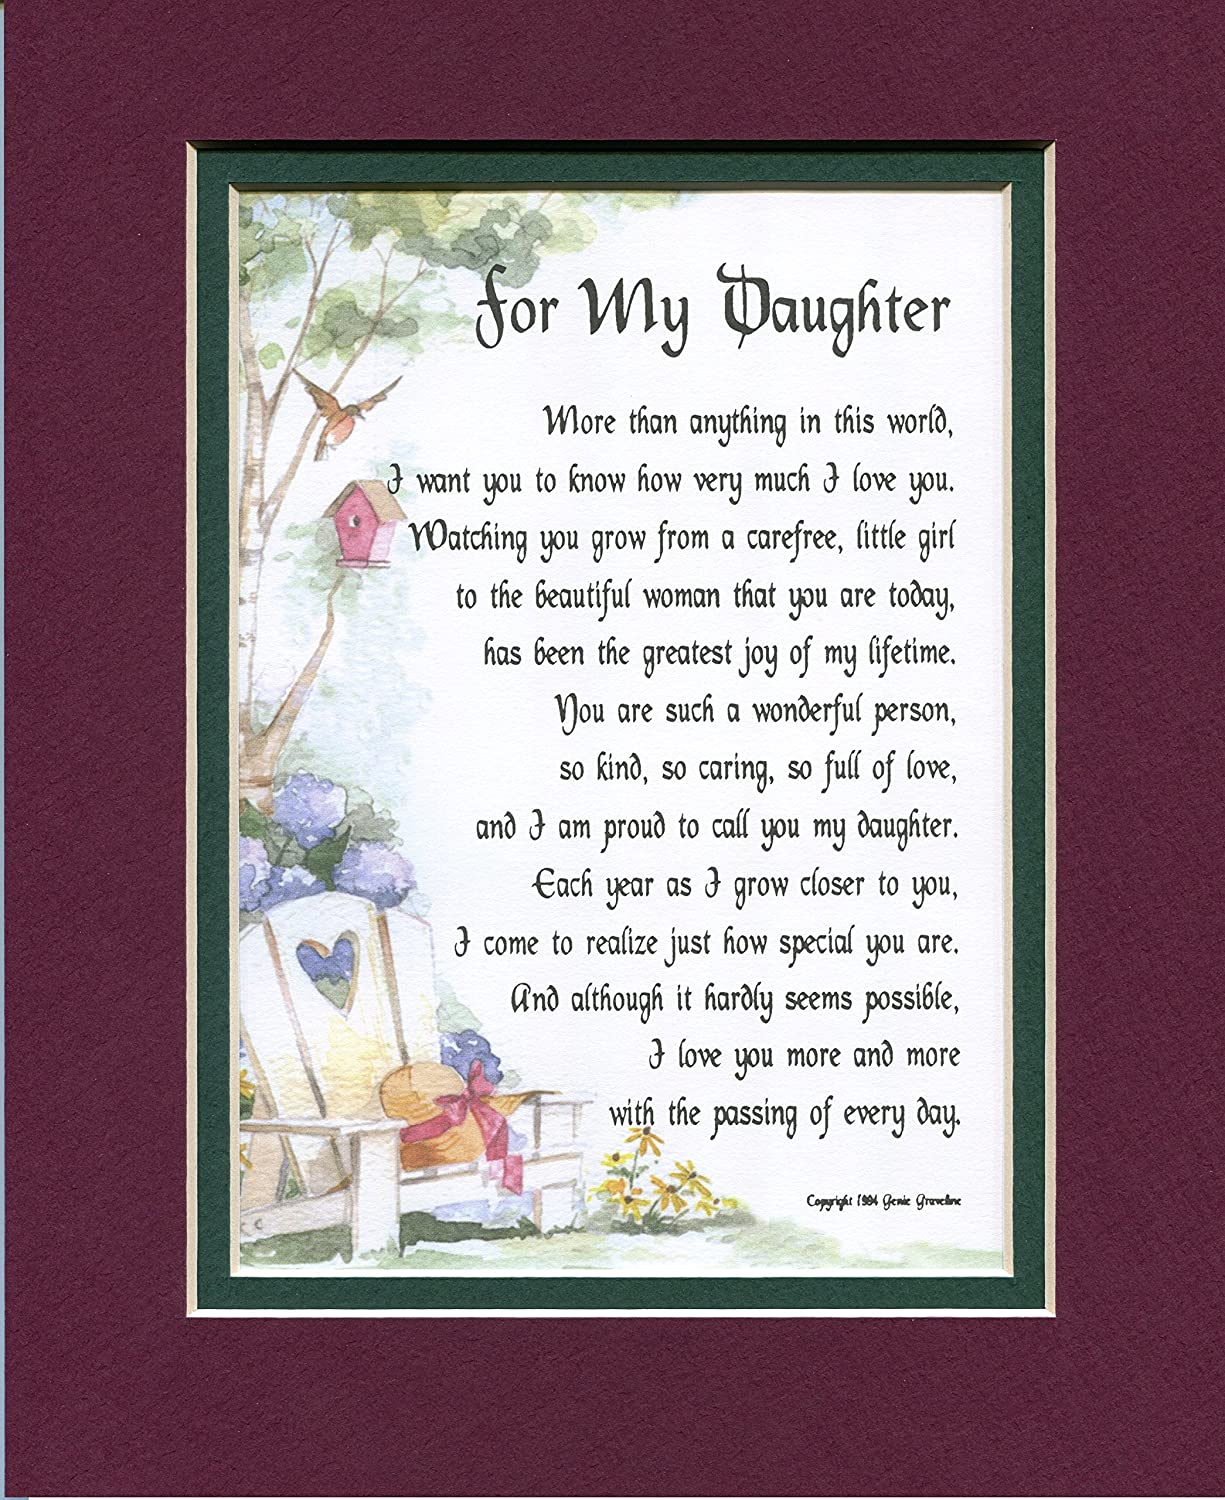 A Gift for a Daughter. #47, a Touching 8×10 Poem, Double-matted in Burgundy Over Dark Green and Enhanced with Watercolor Graphics. – Home Decor Gift Packages